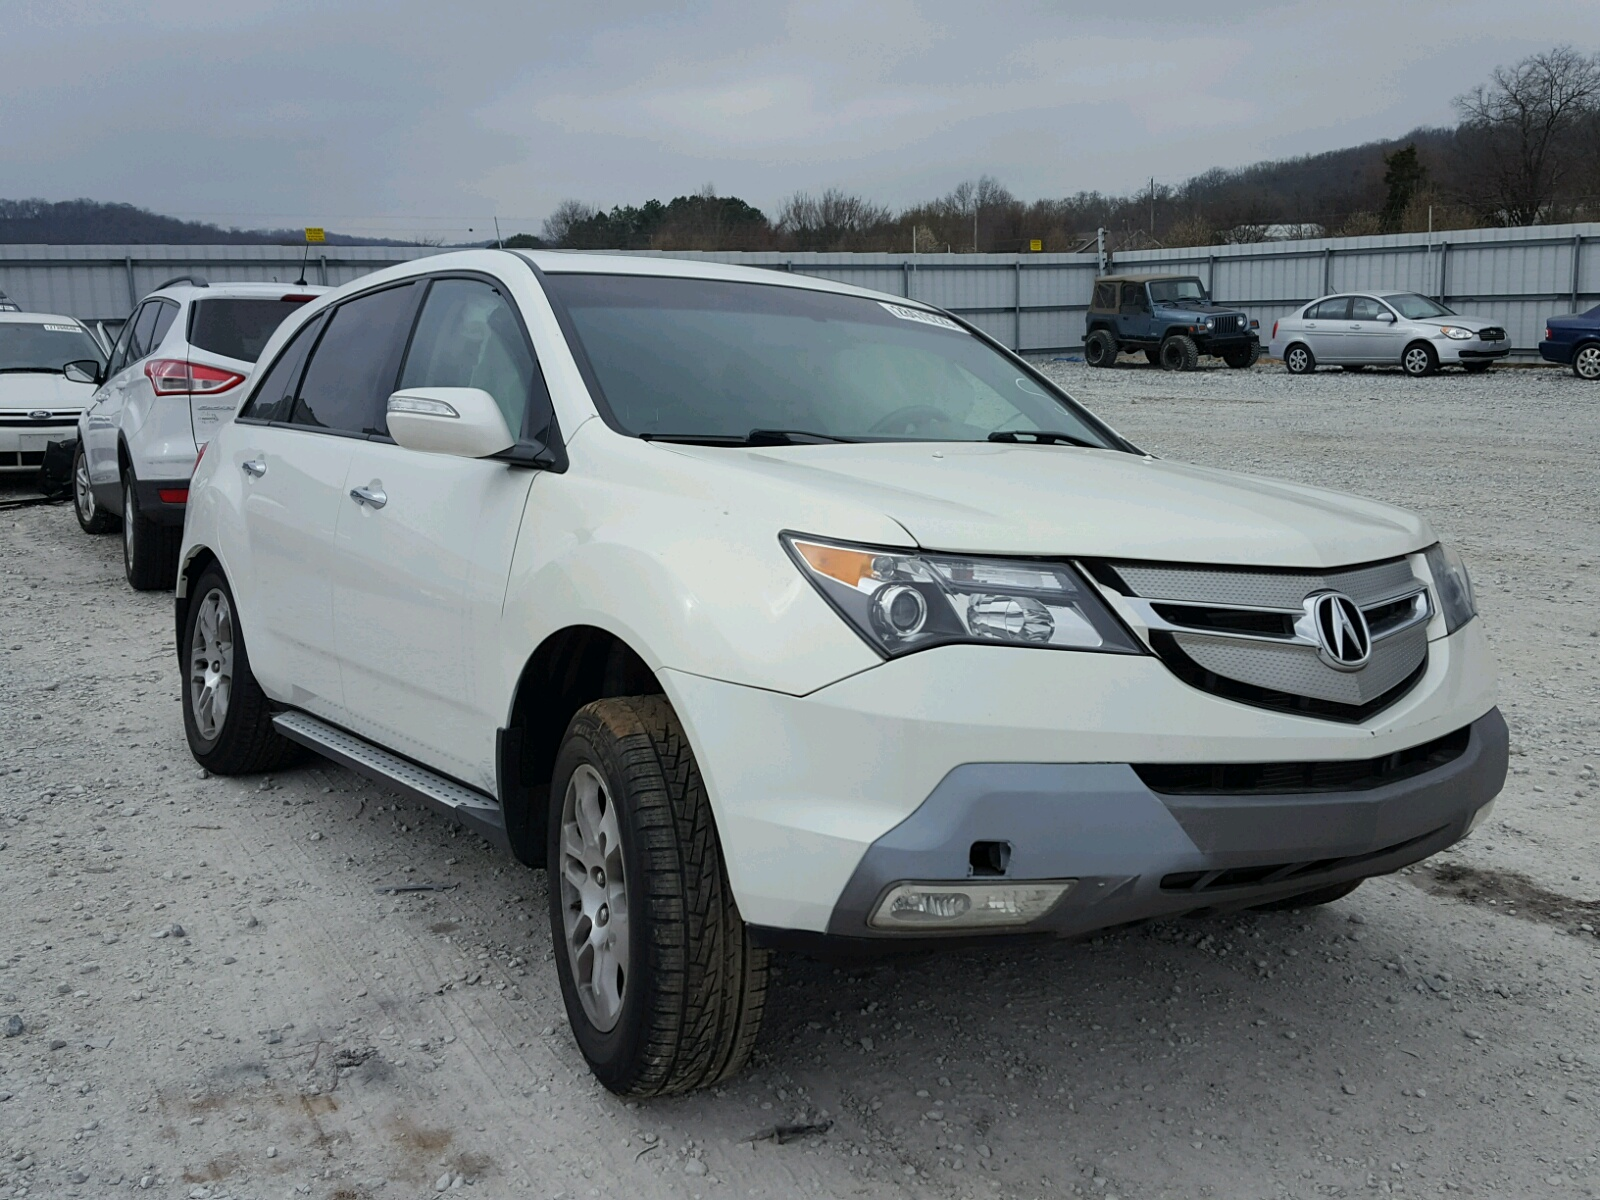 for in ad sale mdx used piscataway usautomobile nj cars acura